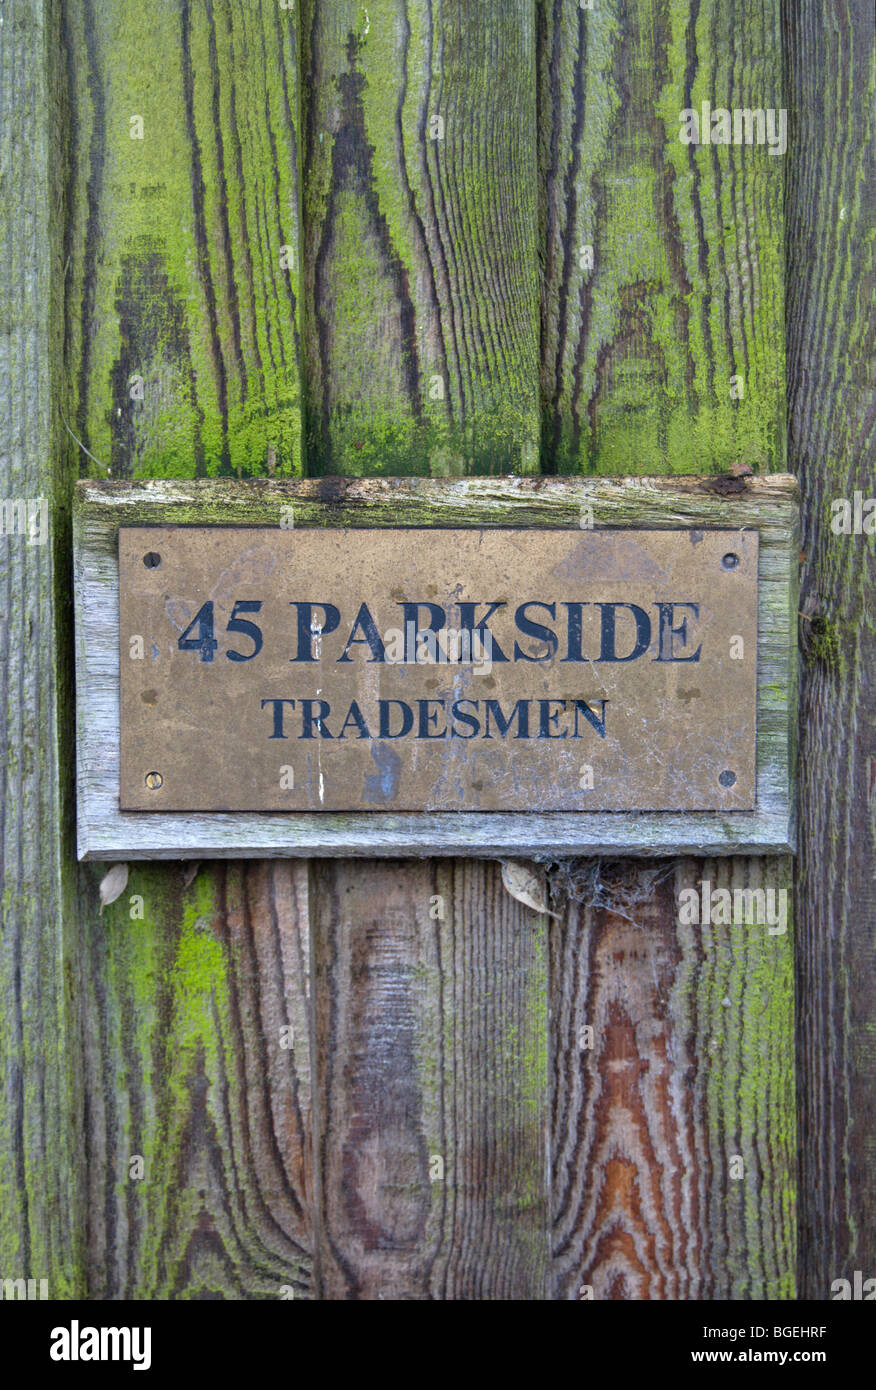 sign on wooden gate marking entrance for tradesmen at the back of a house in wimbledon, southwest london, england - Stock Image